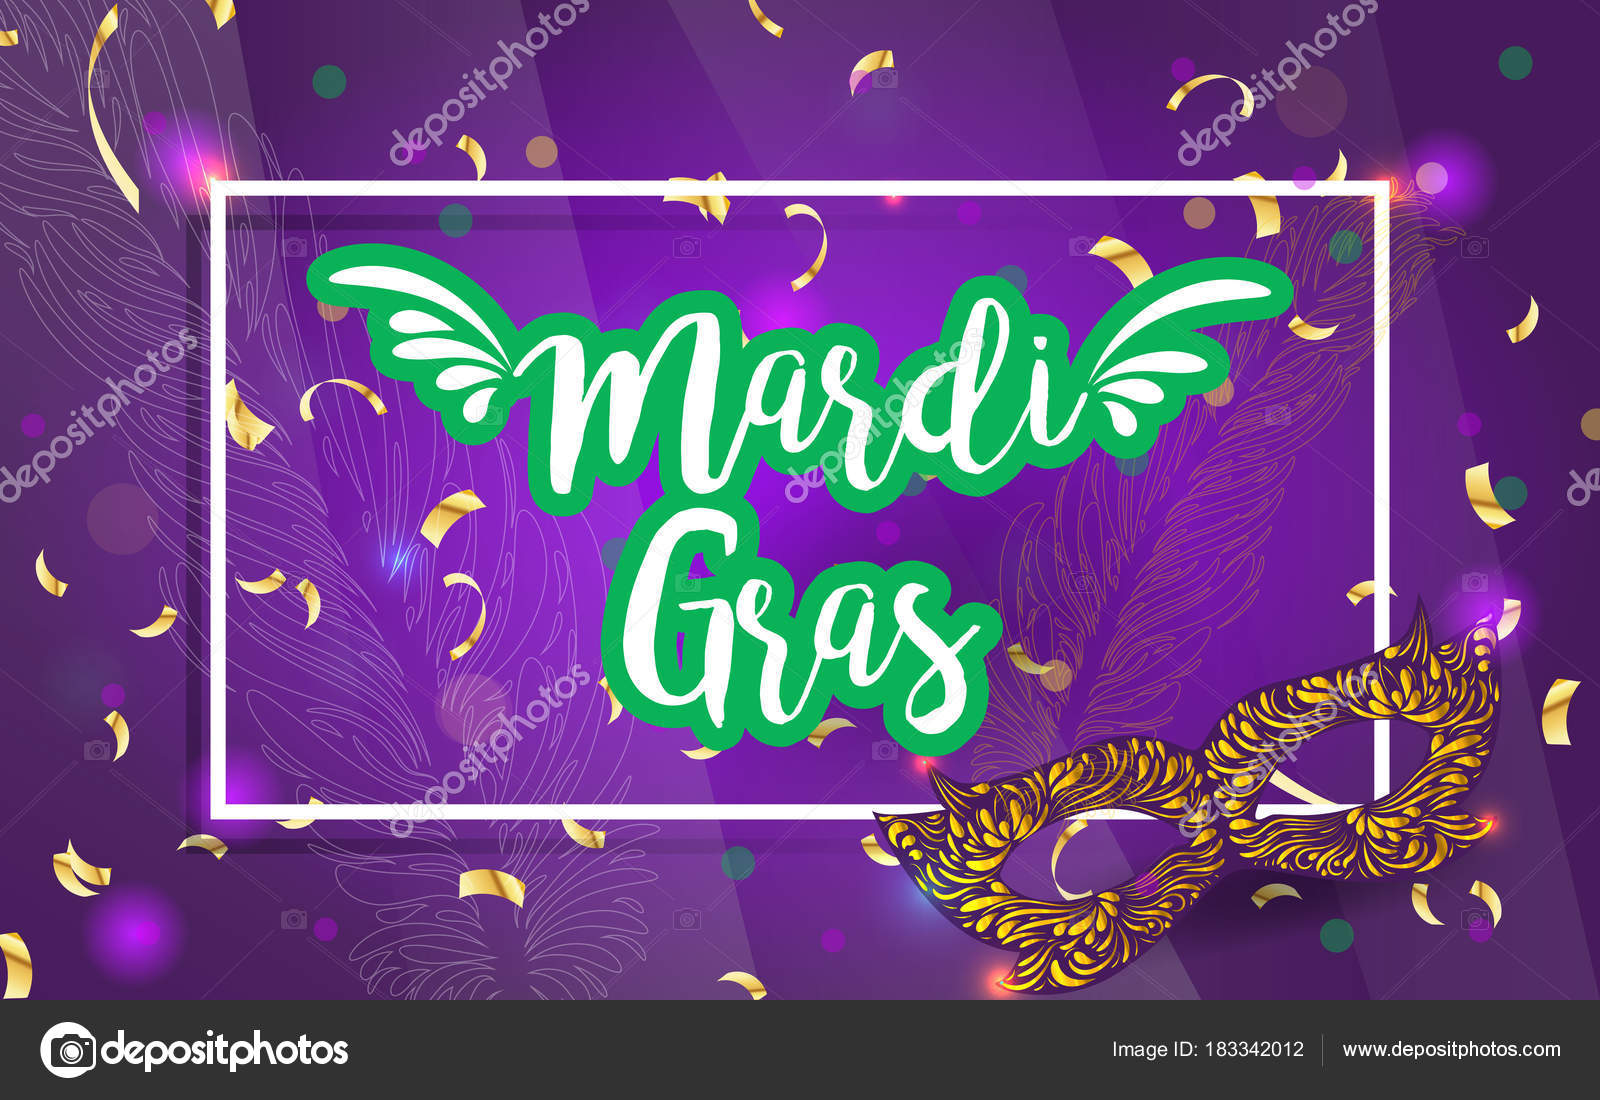 Mardi gras brochure vector logo hand drawn lettering golden fat mardi gras brochure vector logo with hand drawn lettering and golden fat tuesday mask greeting card with shining beads on traditional colors background m4hsunfo